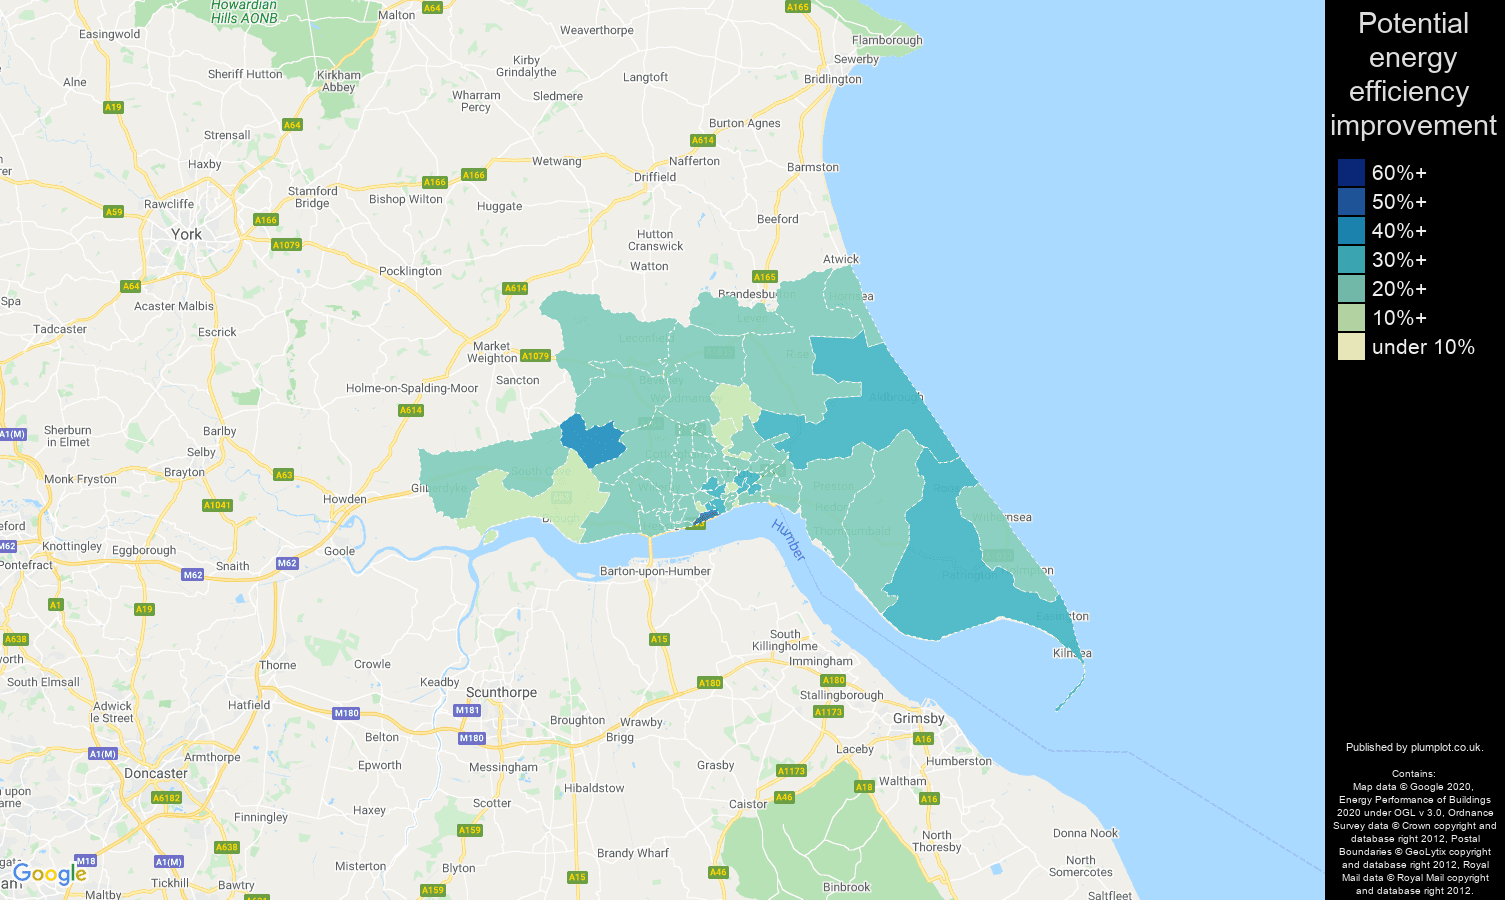 Hull map of potential energy efficiency improvement of houses